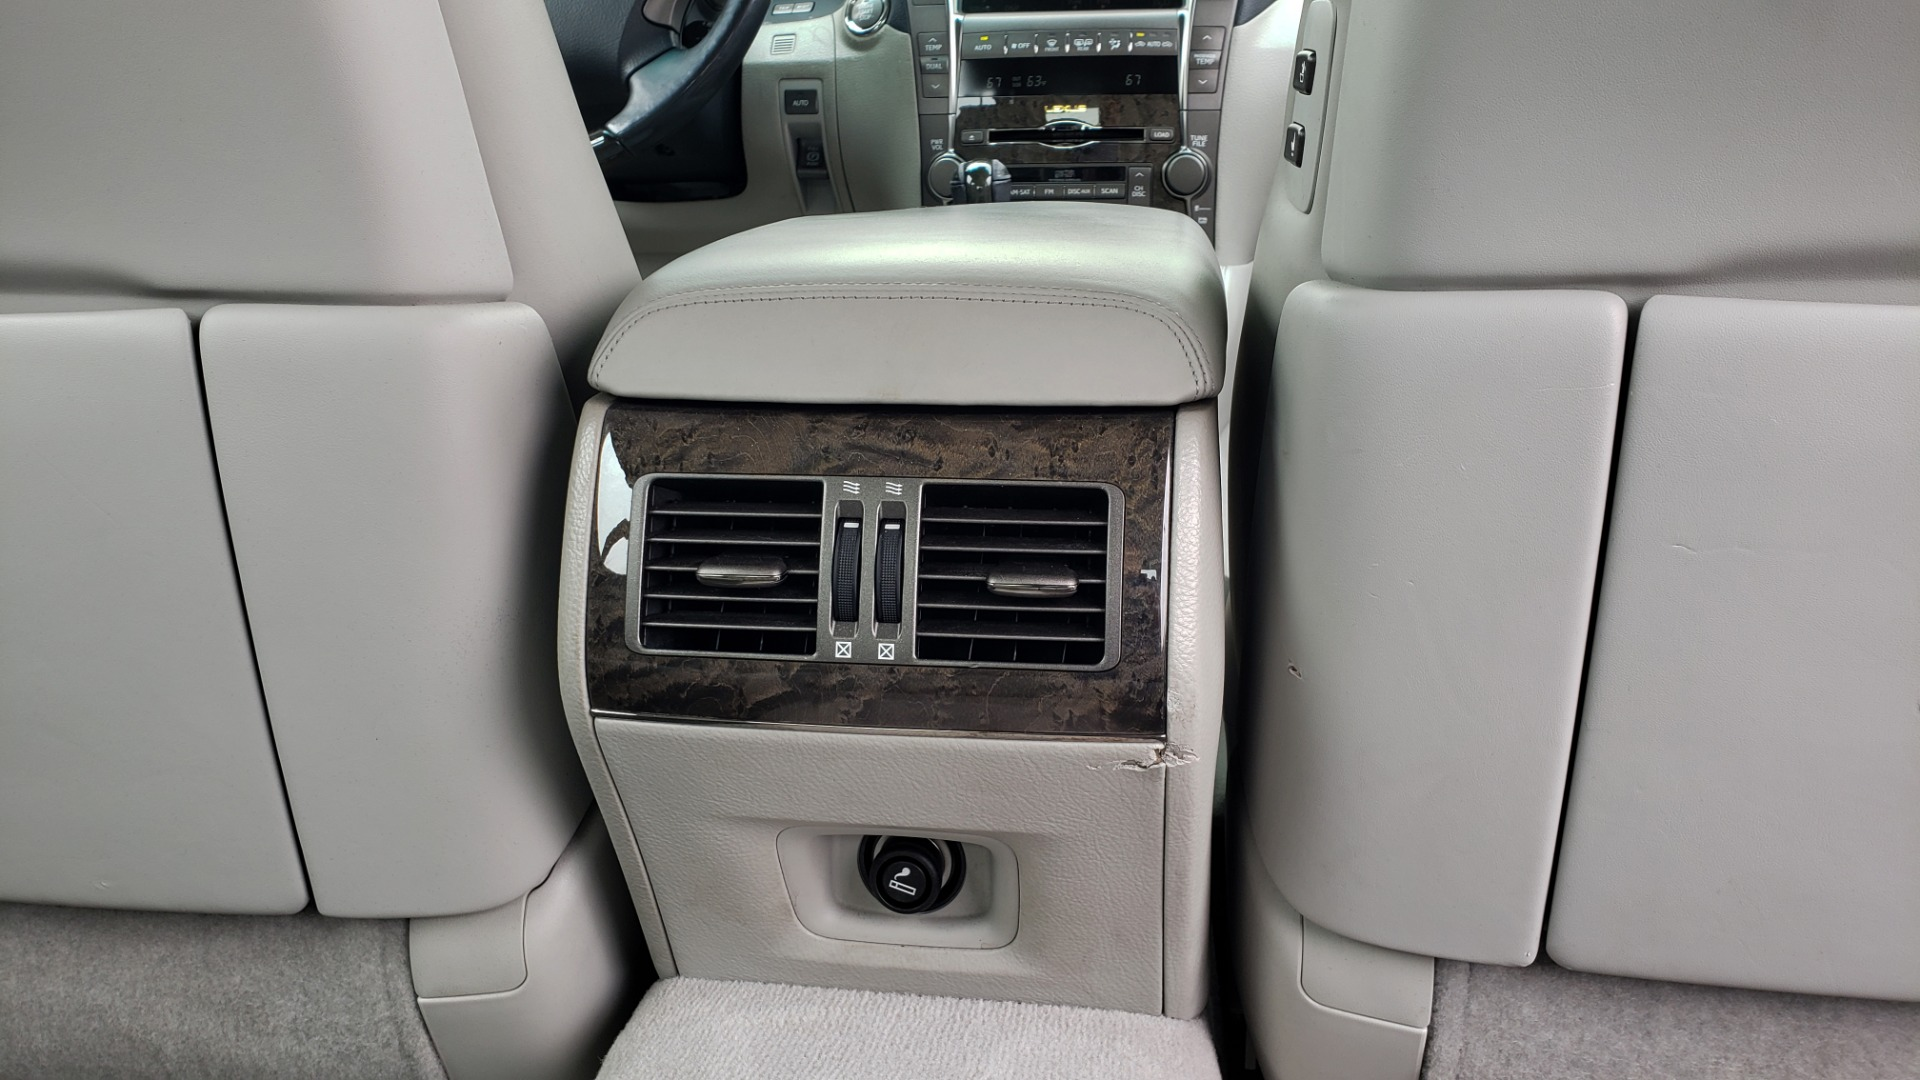 Used 2008 Lexus LS 460 LWB LUXURY SEDAN / MARK LEVINSON / INT PARK ASST / REARVIEW for sale Sold at Formula Imports in Charlotte NC 28227 76